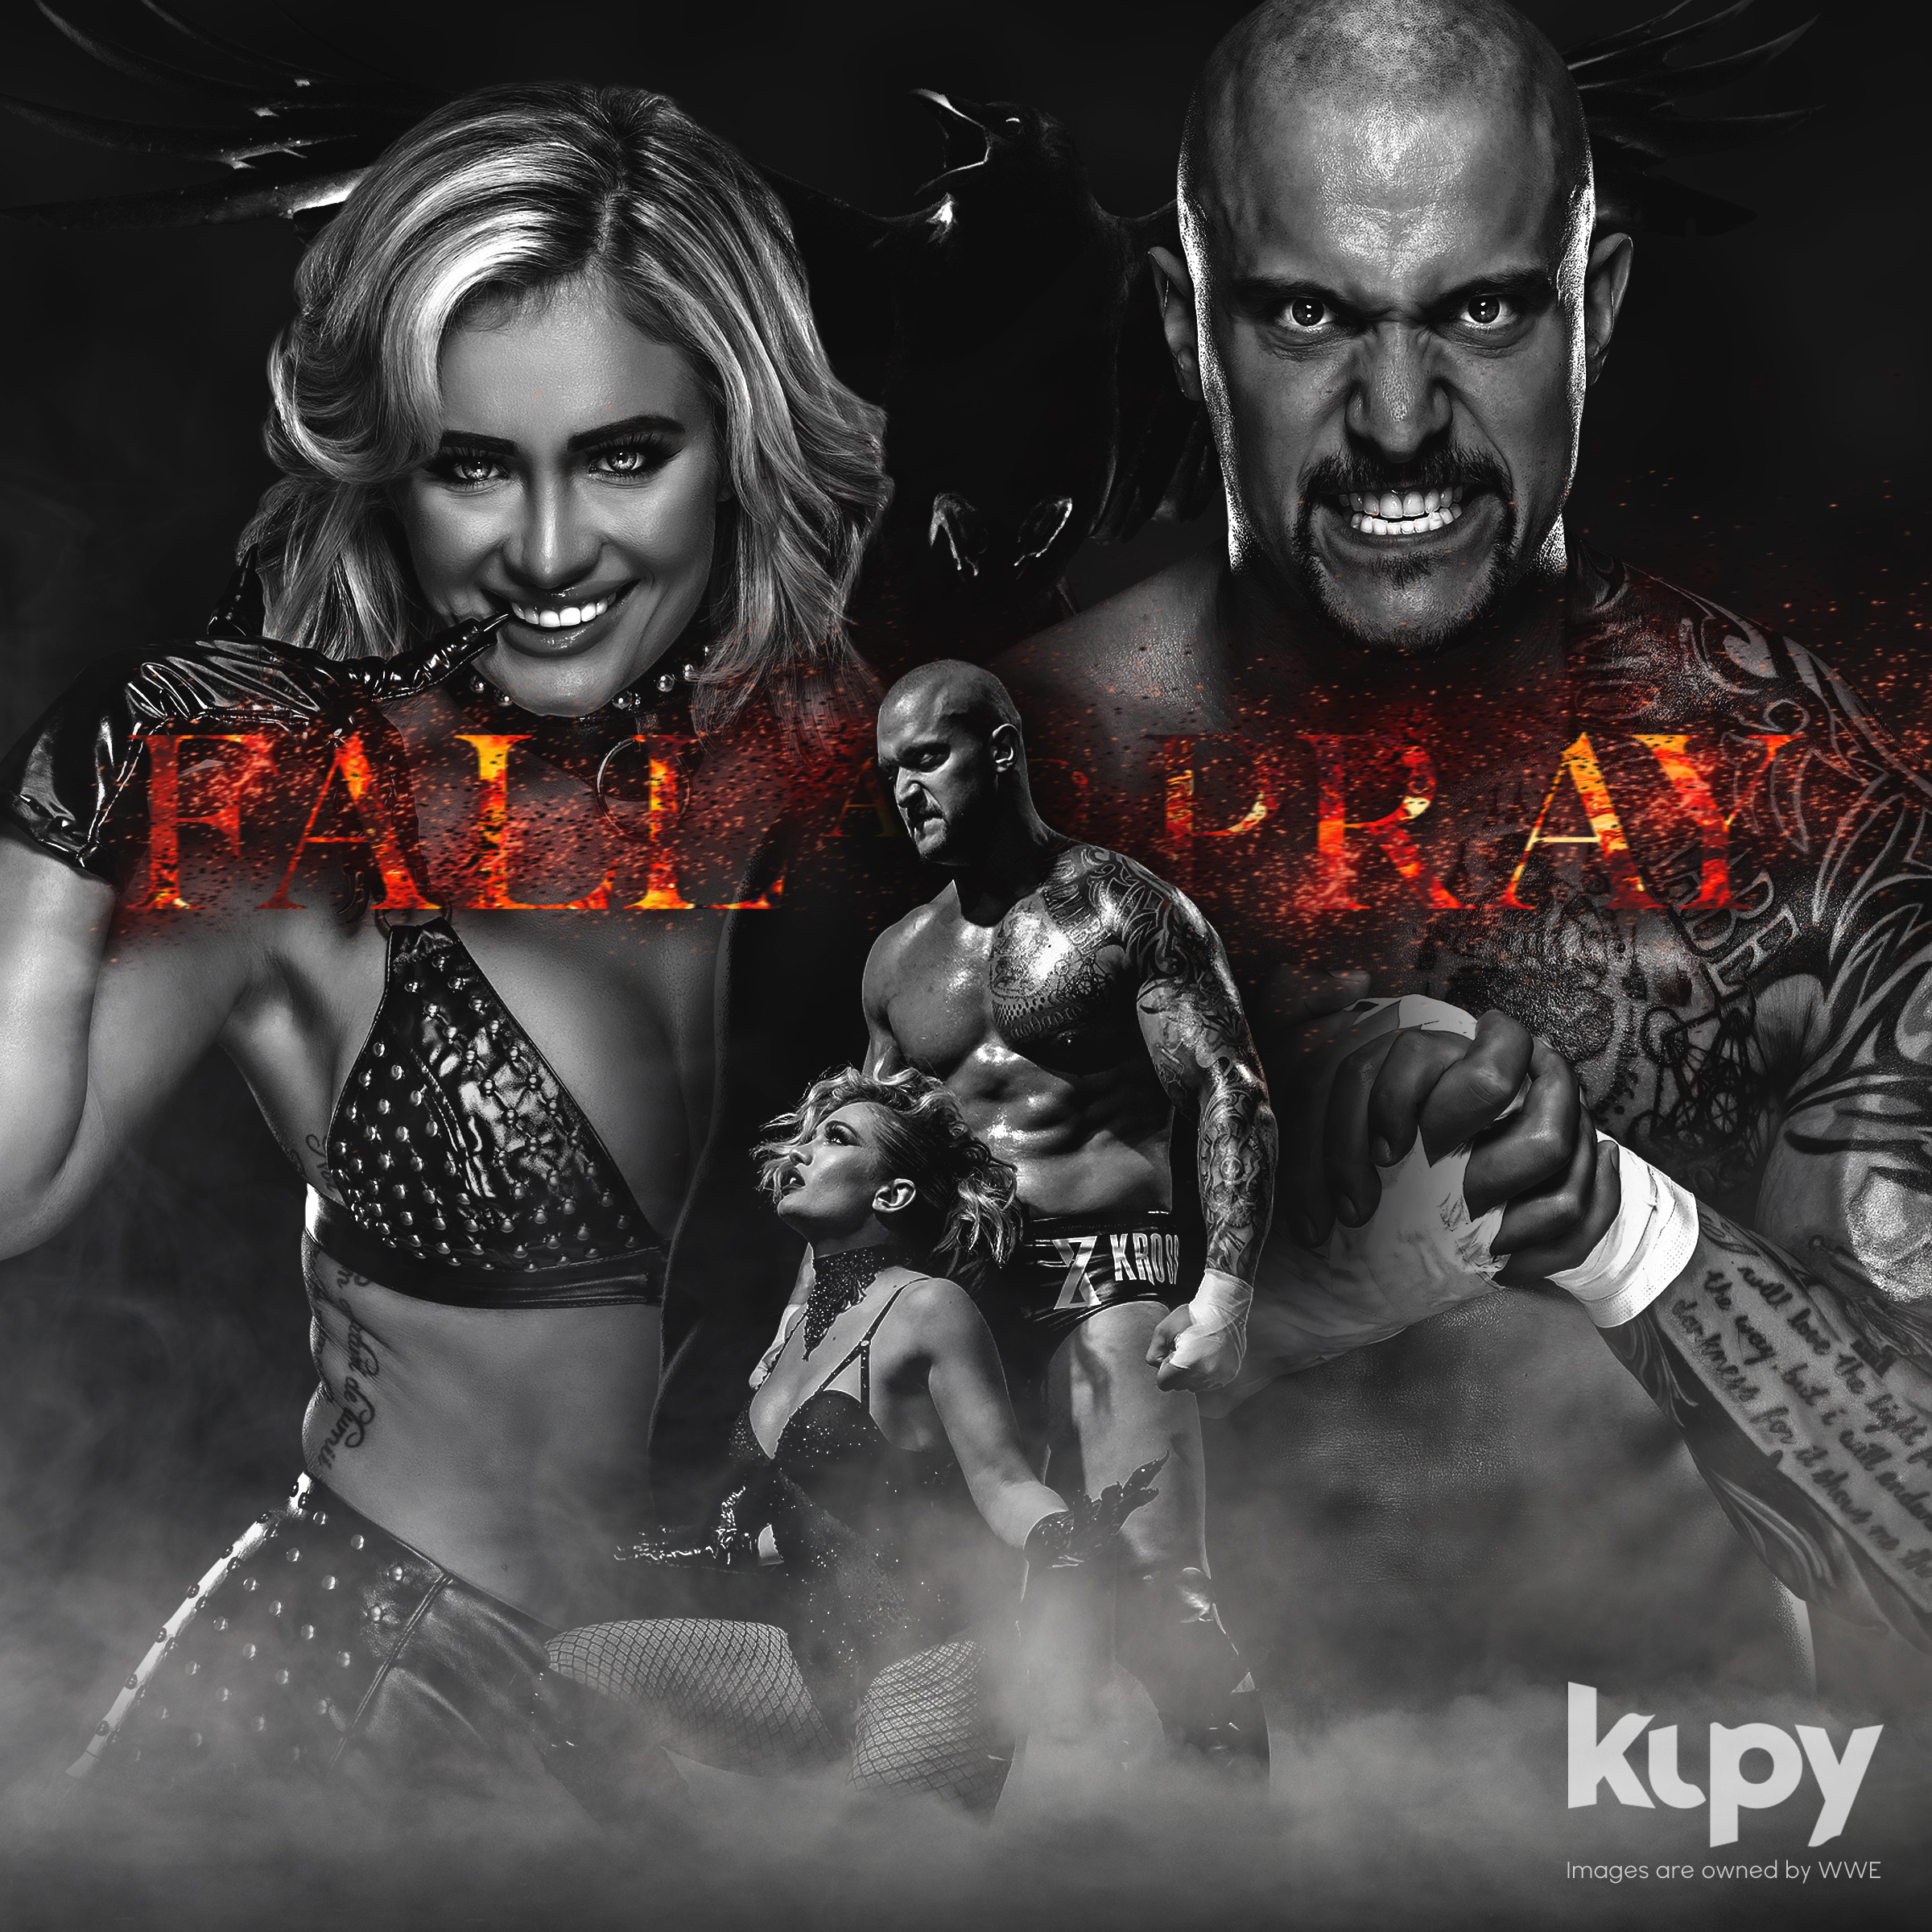 kupy wrestling wallpapers the latest source for your wwe wrestling wallpaper needs mobile hd and 4k resolutions available kupy wrestling wallpapers the latest source for your wwe wrestling wallpaper needs kupy wrestling wallpapers the latest